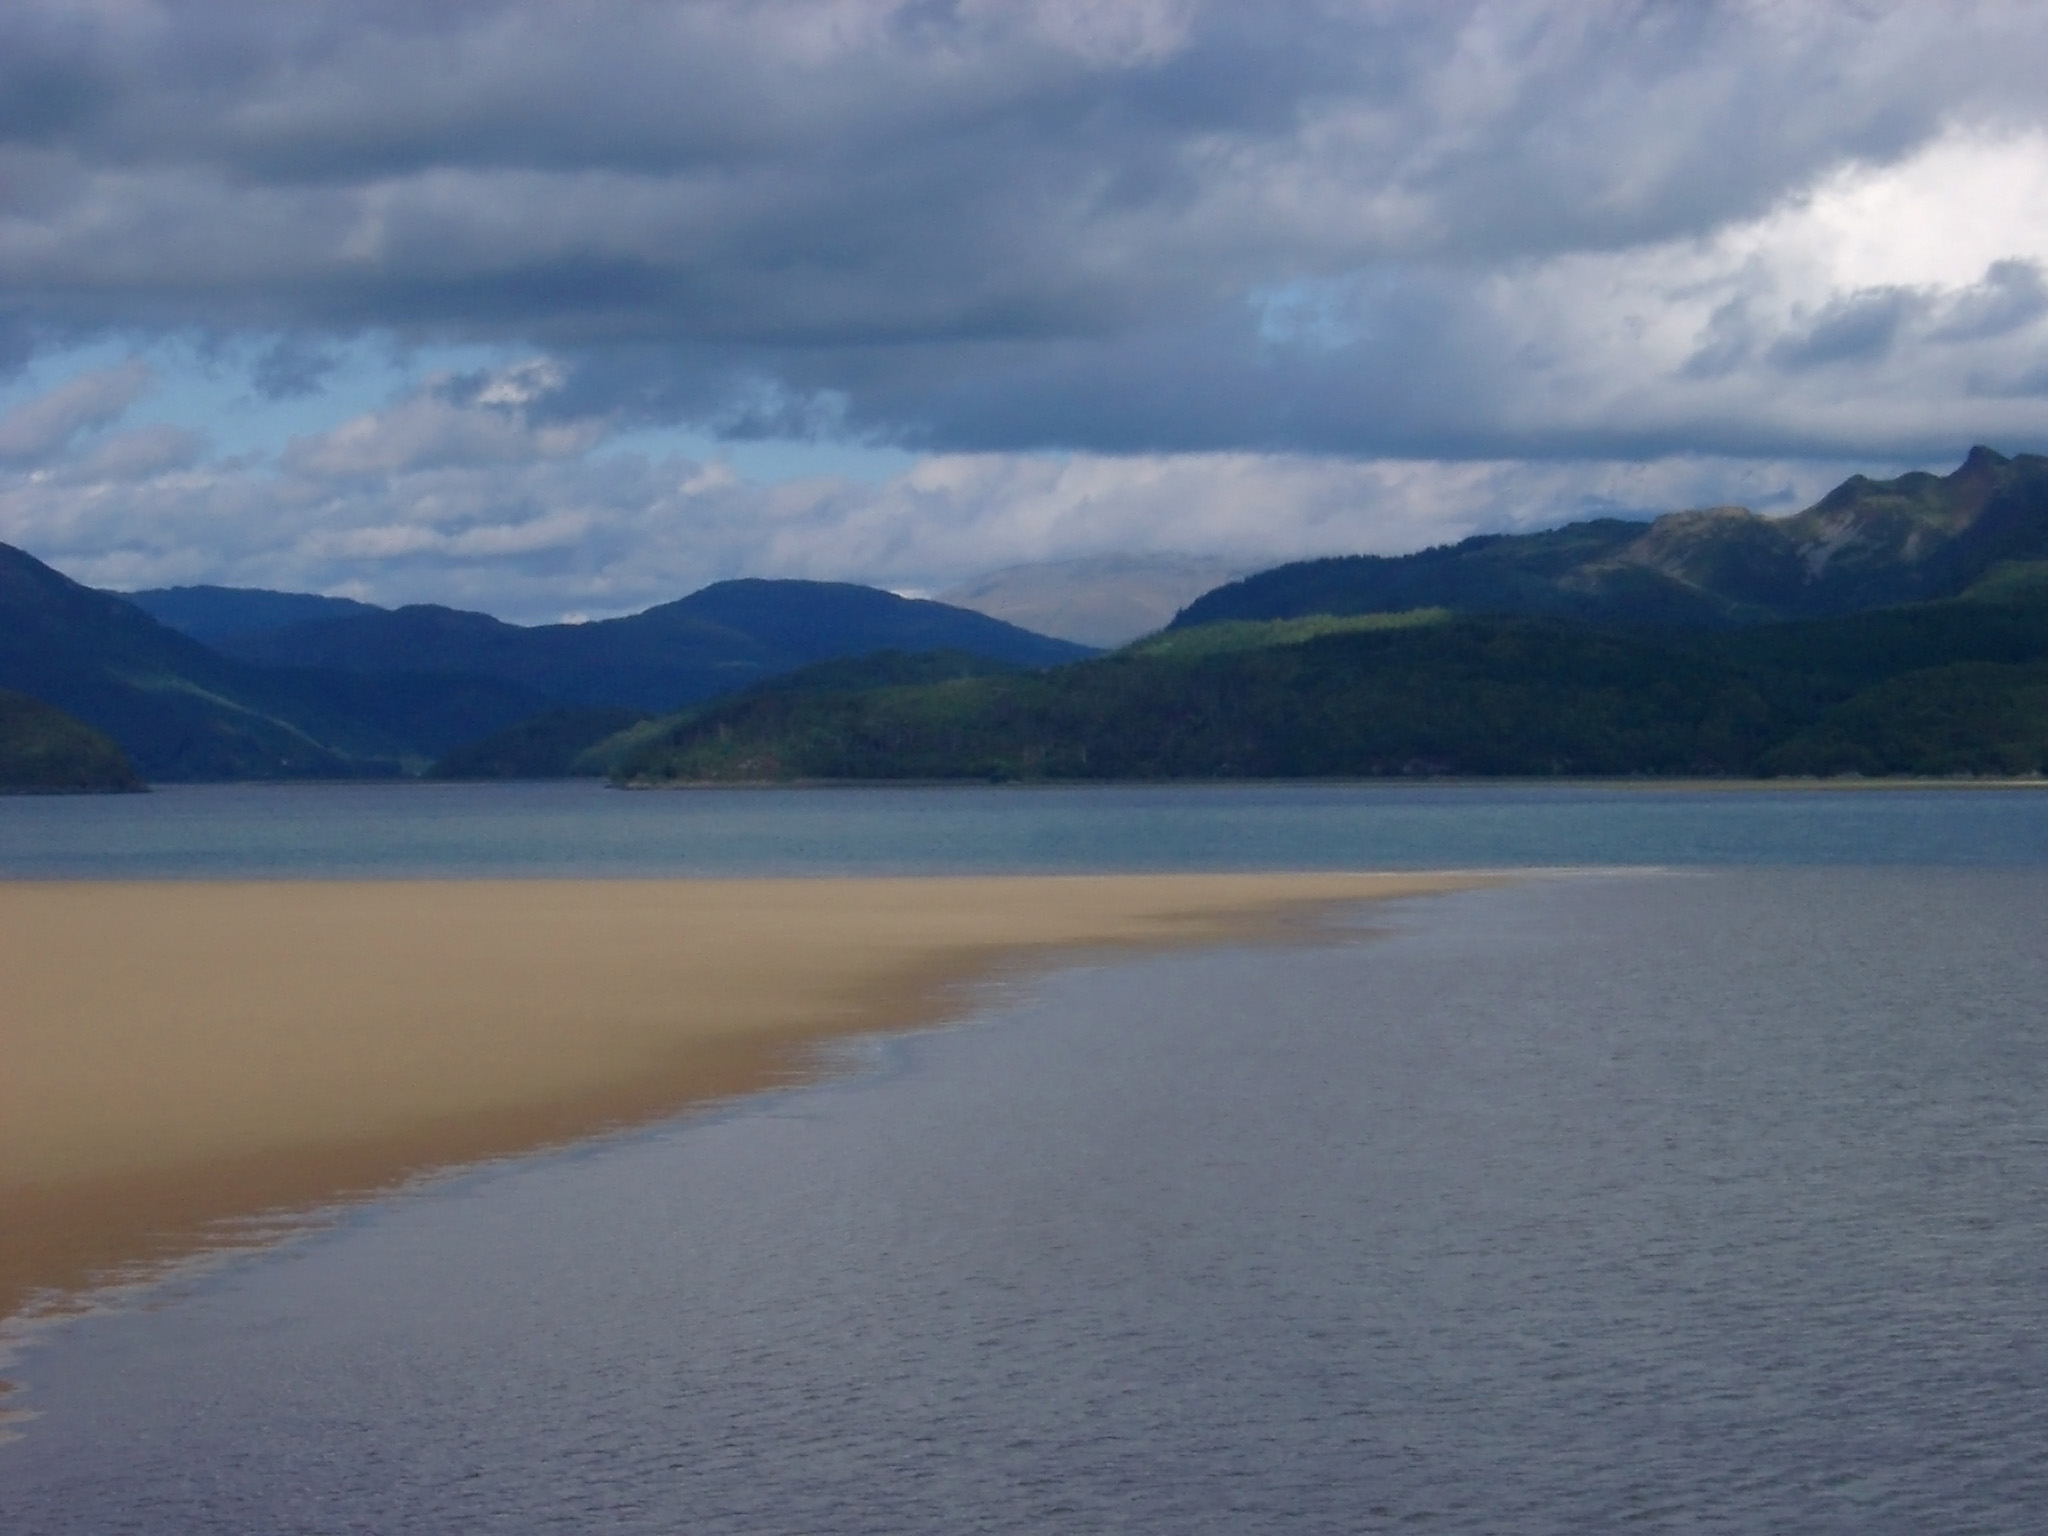 Tranquil Waterside with Brown Sand, Captured with Mountains View